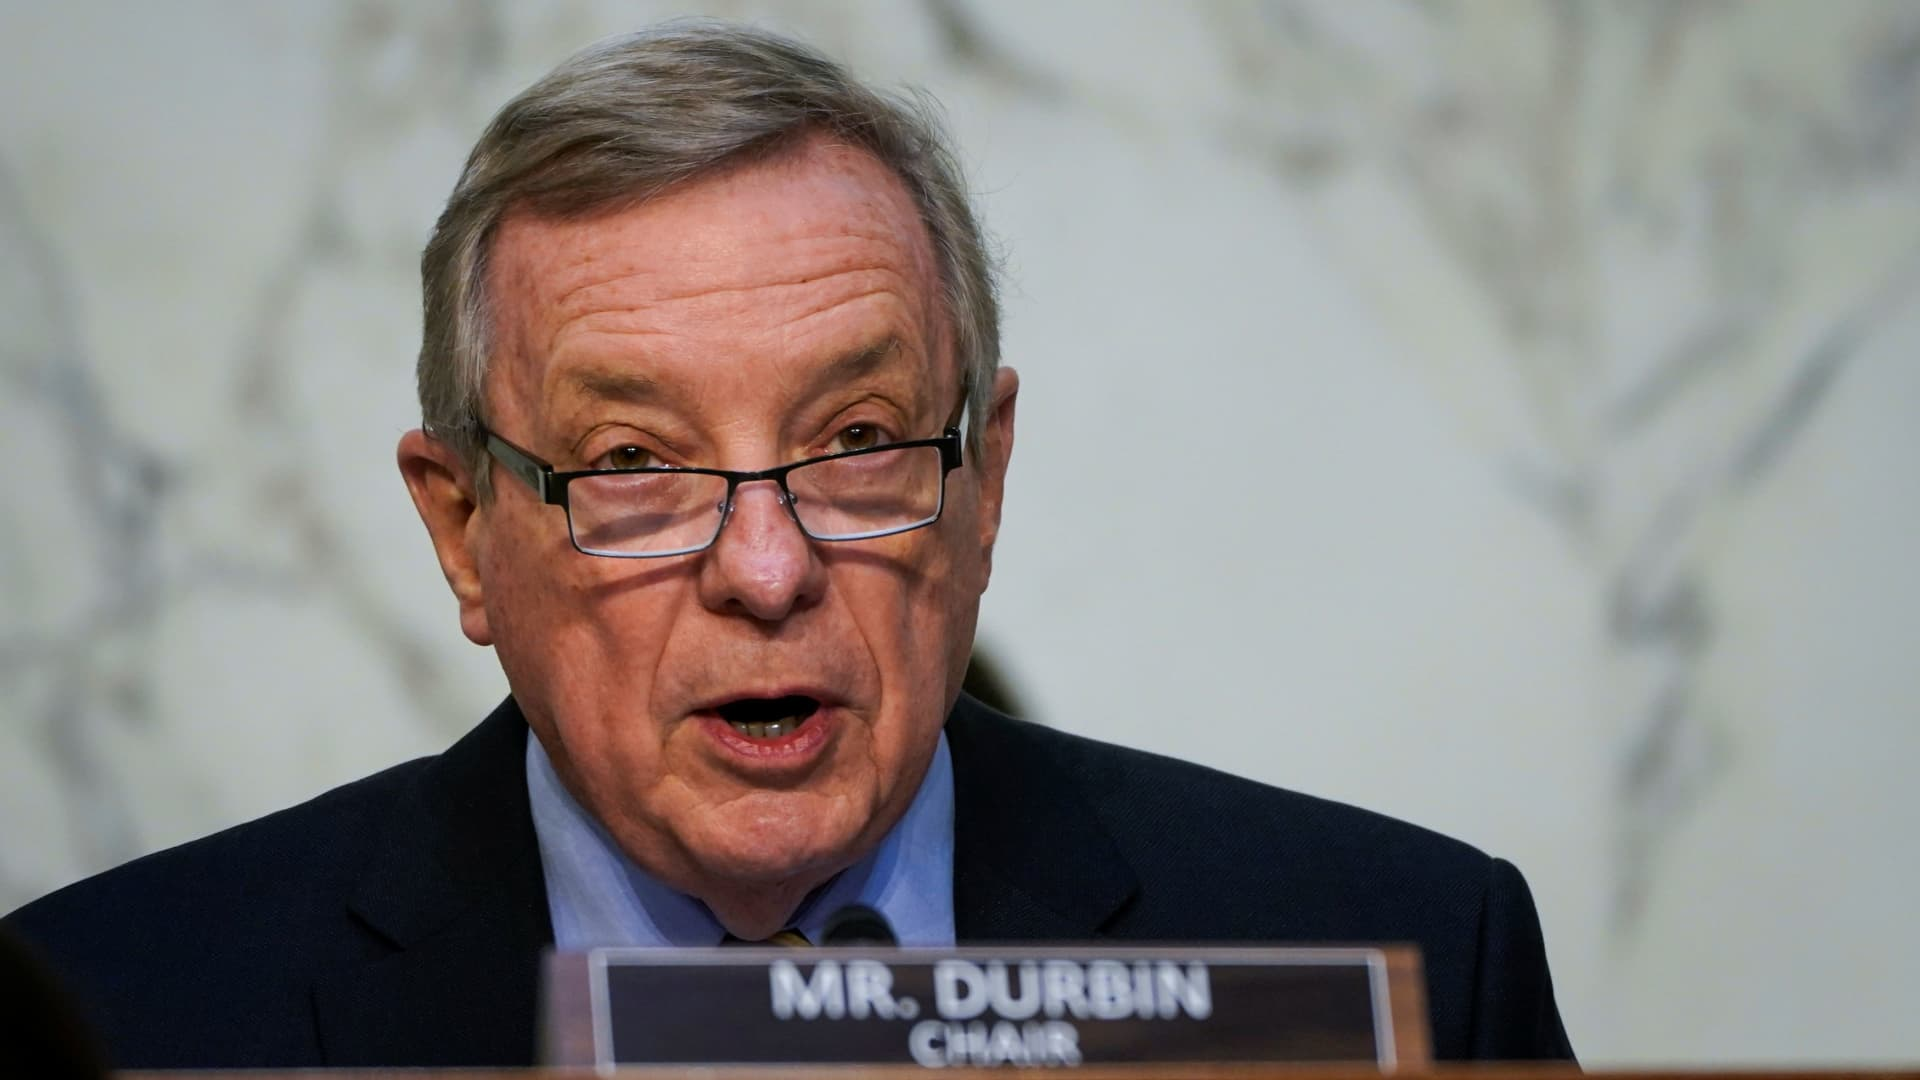 Senate Judiciary Committee chairman Sen. Dick Durbin (D-IL) speaks during his opening statement during Attorney General nominee Merrick Garland's confirmation hearing before the Senate Judiciary Committee, Washington, DC, February 22, 2021.